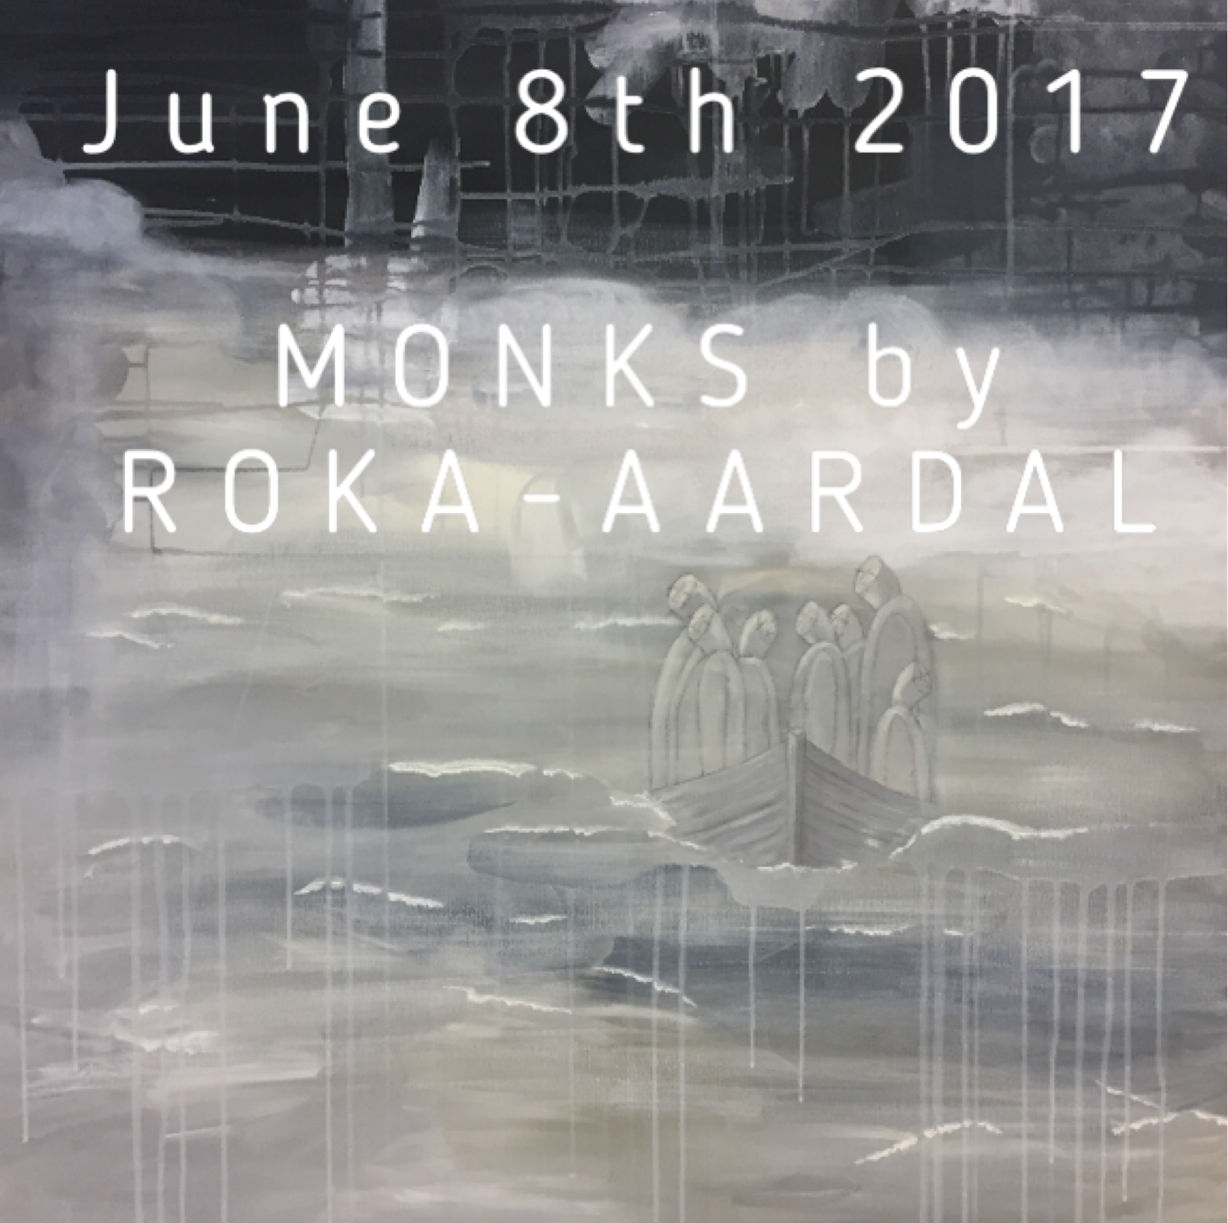 MONKS by Henriette Roka-Aardal @ OHD, June 8th 2017